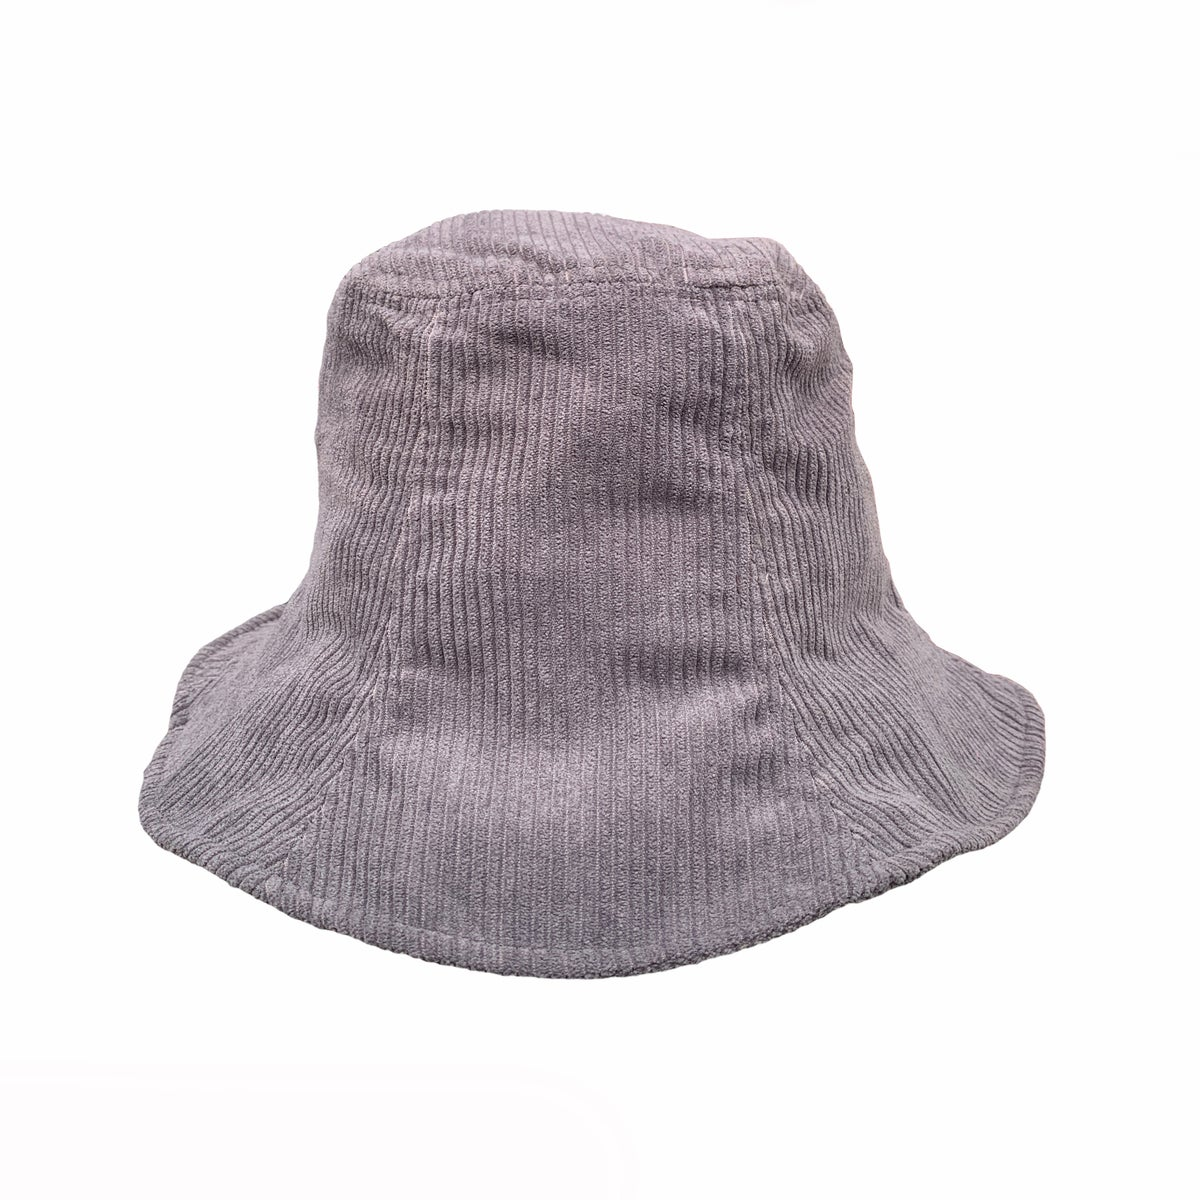 Image of Corduroy Bucket Hat. Grey (was £23 now £18.40)